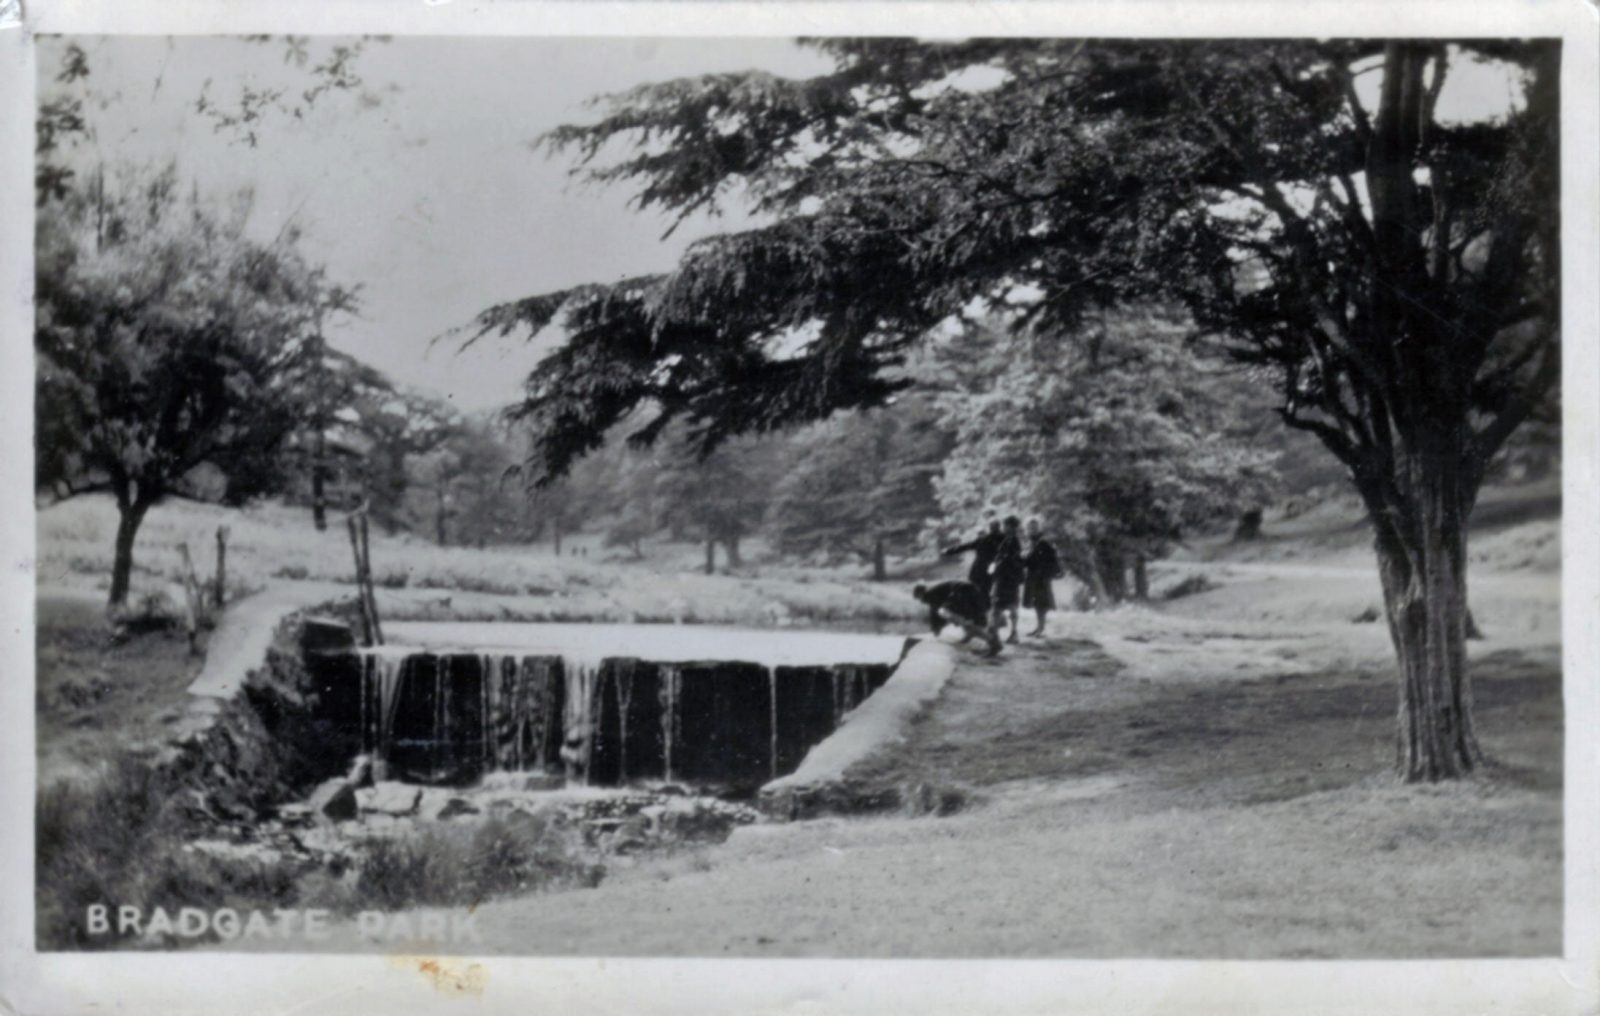 Bradgate Park, Leicester. 1941-1960: The river and weir near Newtown Linford entrance. Franked 1951 (File:1117)